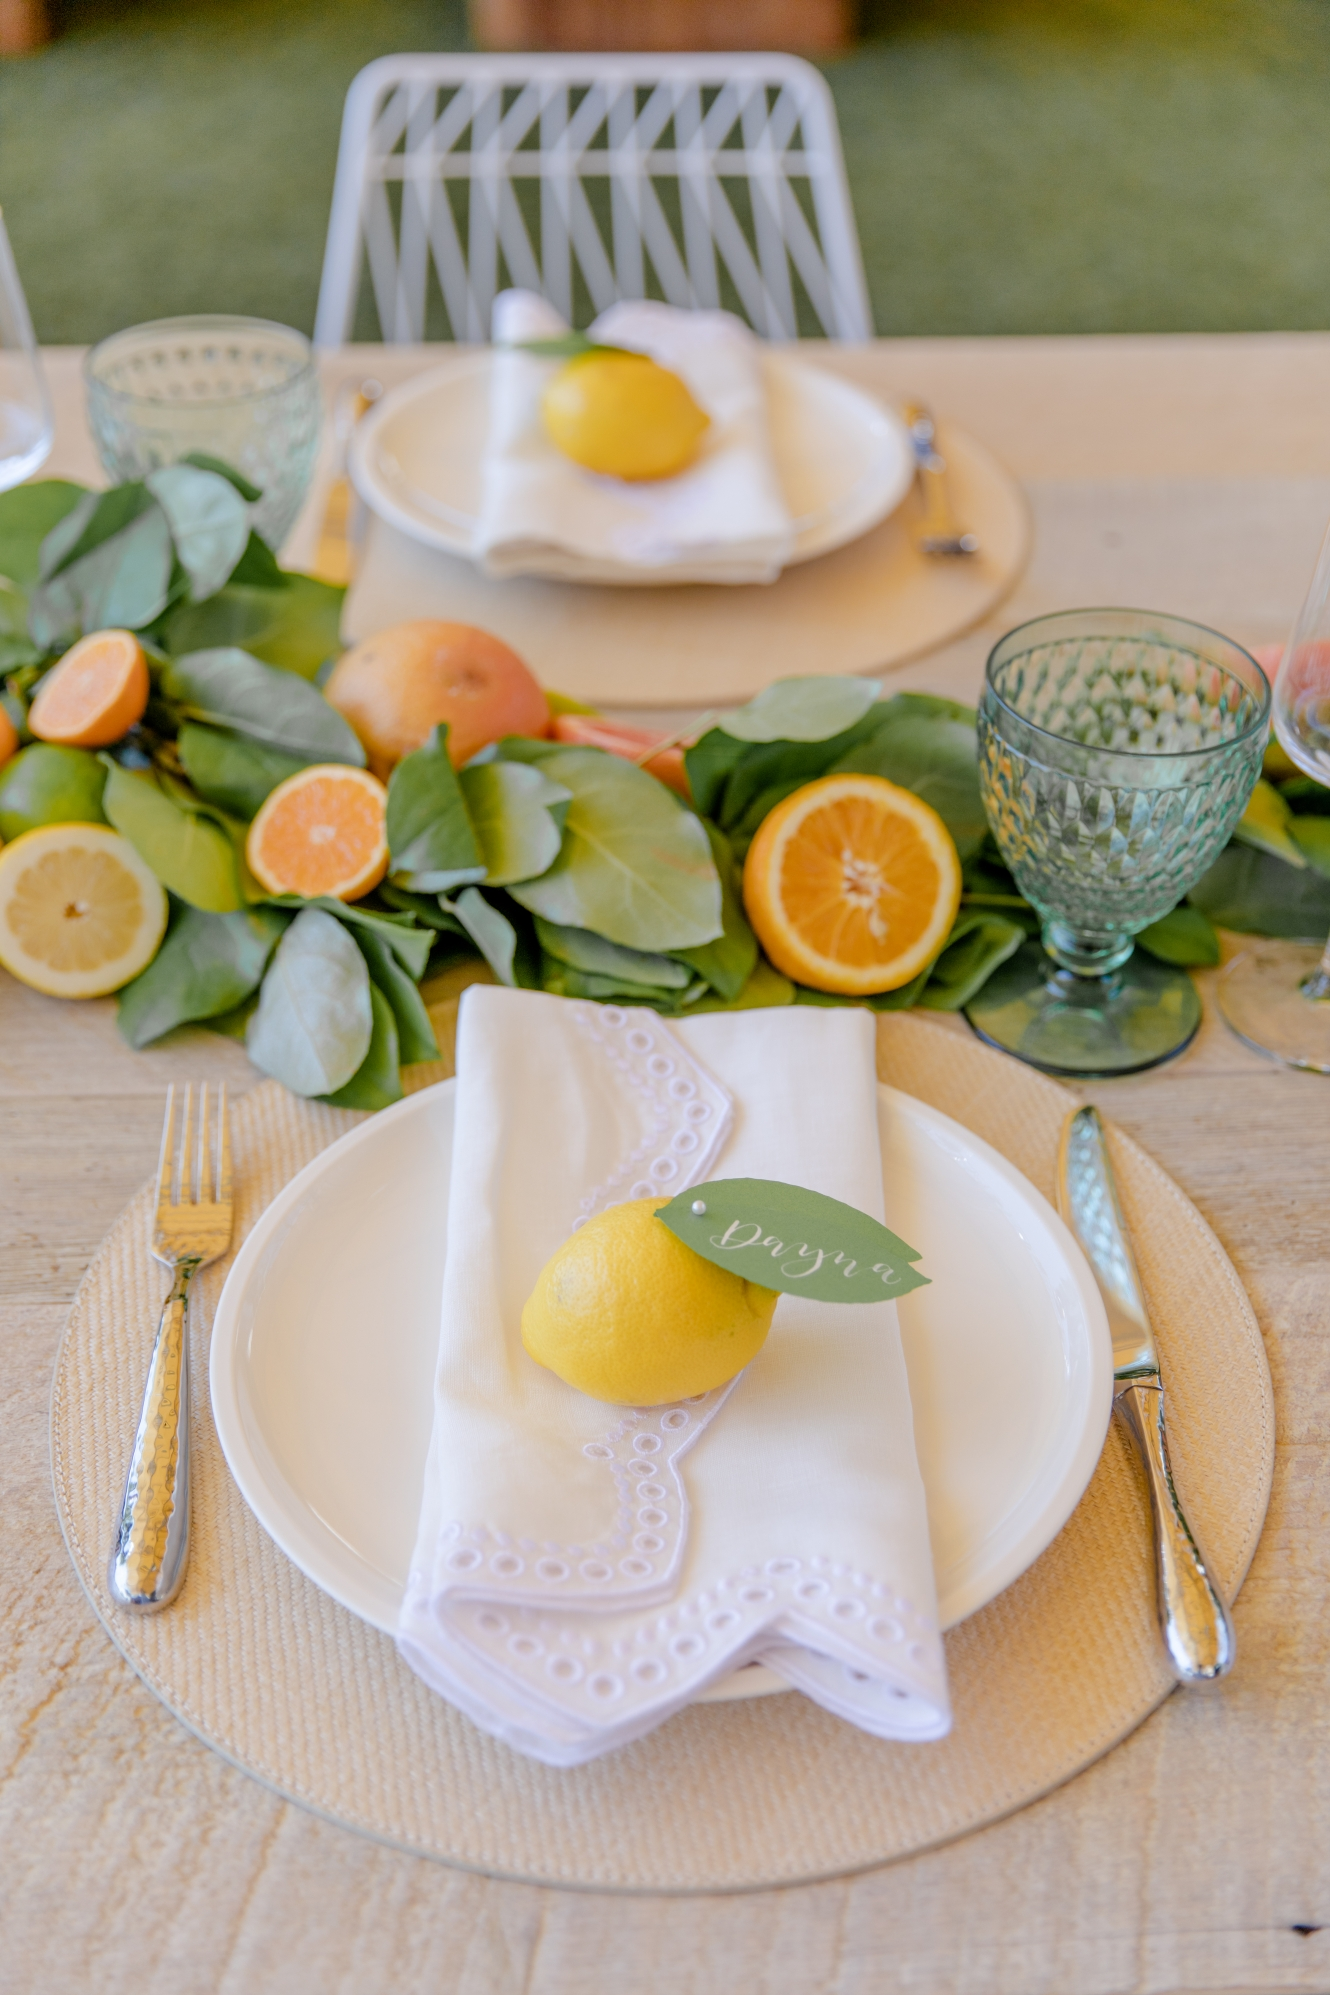 Host a Citrus Theme Party